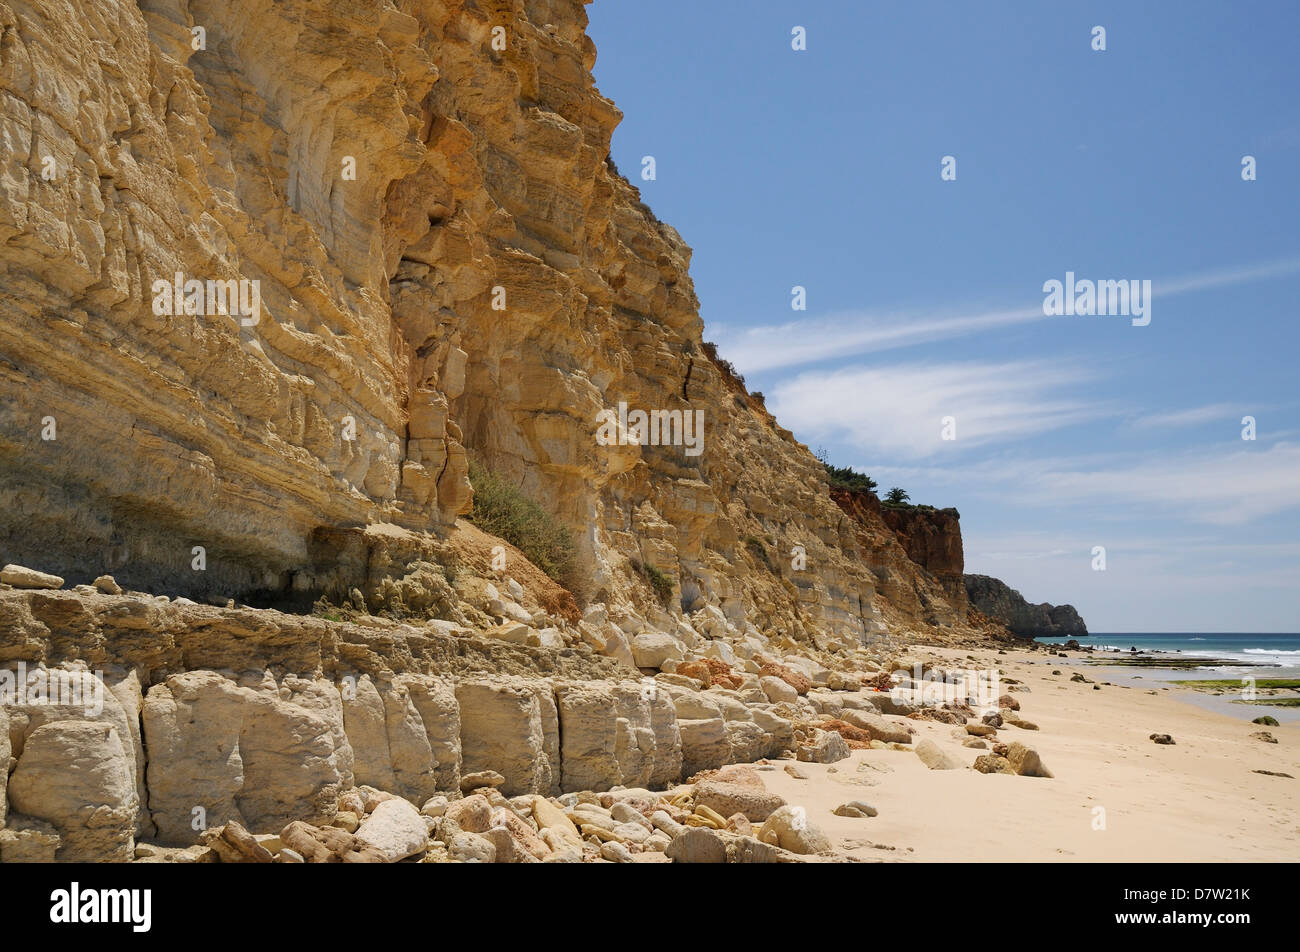 Weathered, layered sandstone cliffs at Praia do Mos, Lagos, Algarve, Portugal - Stock Image